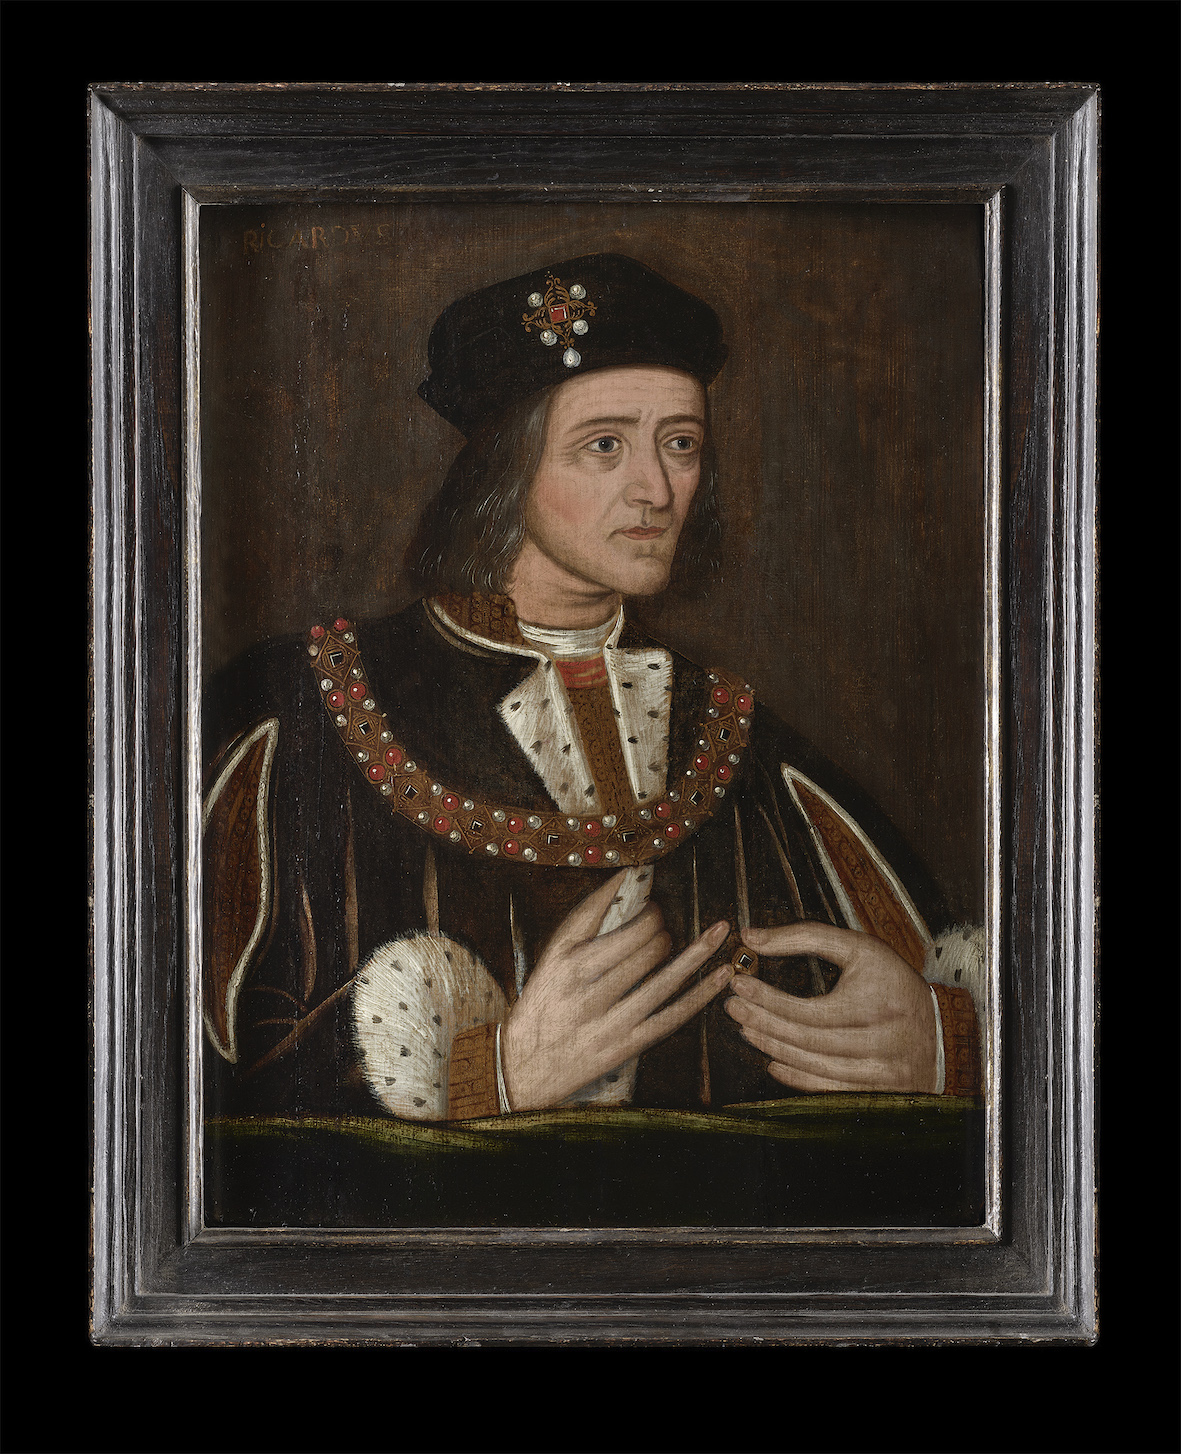 Richard III makes first public appearance